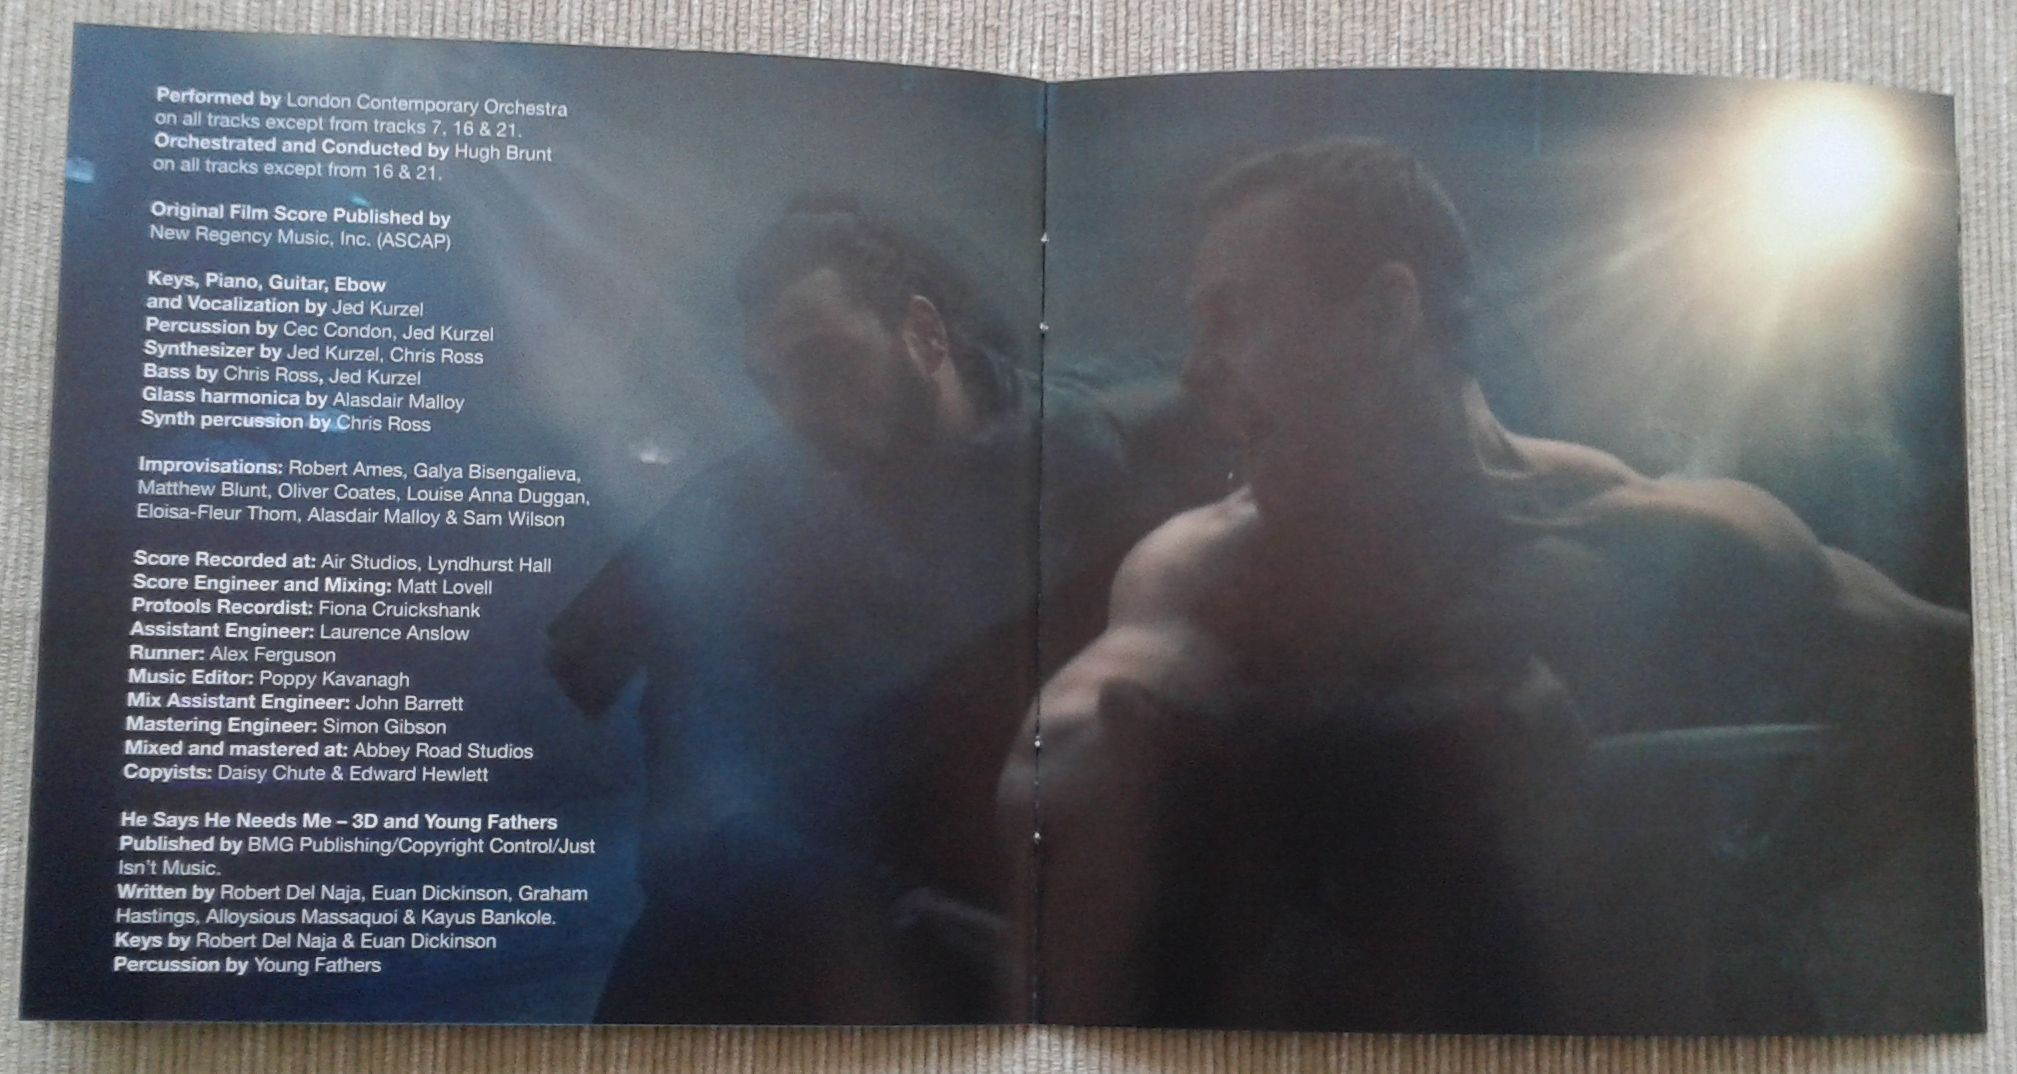 8. Assassins Creed booklet 4.jpg